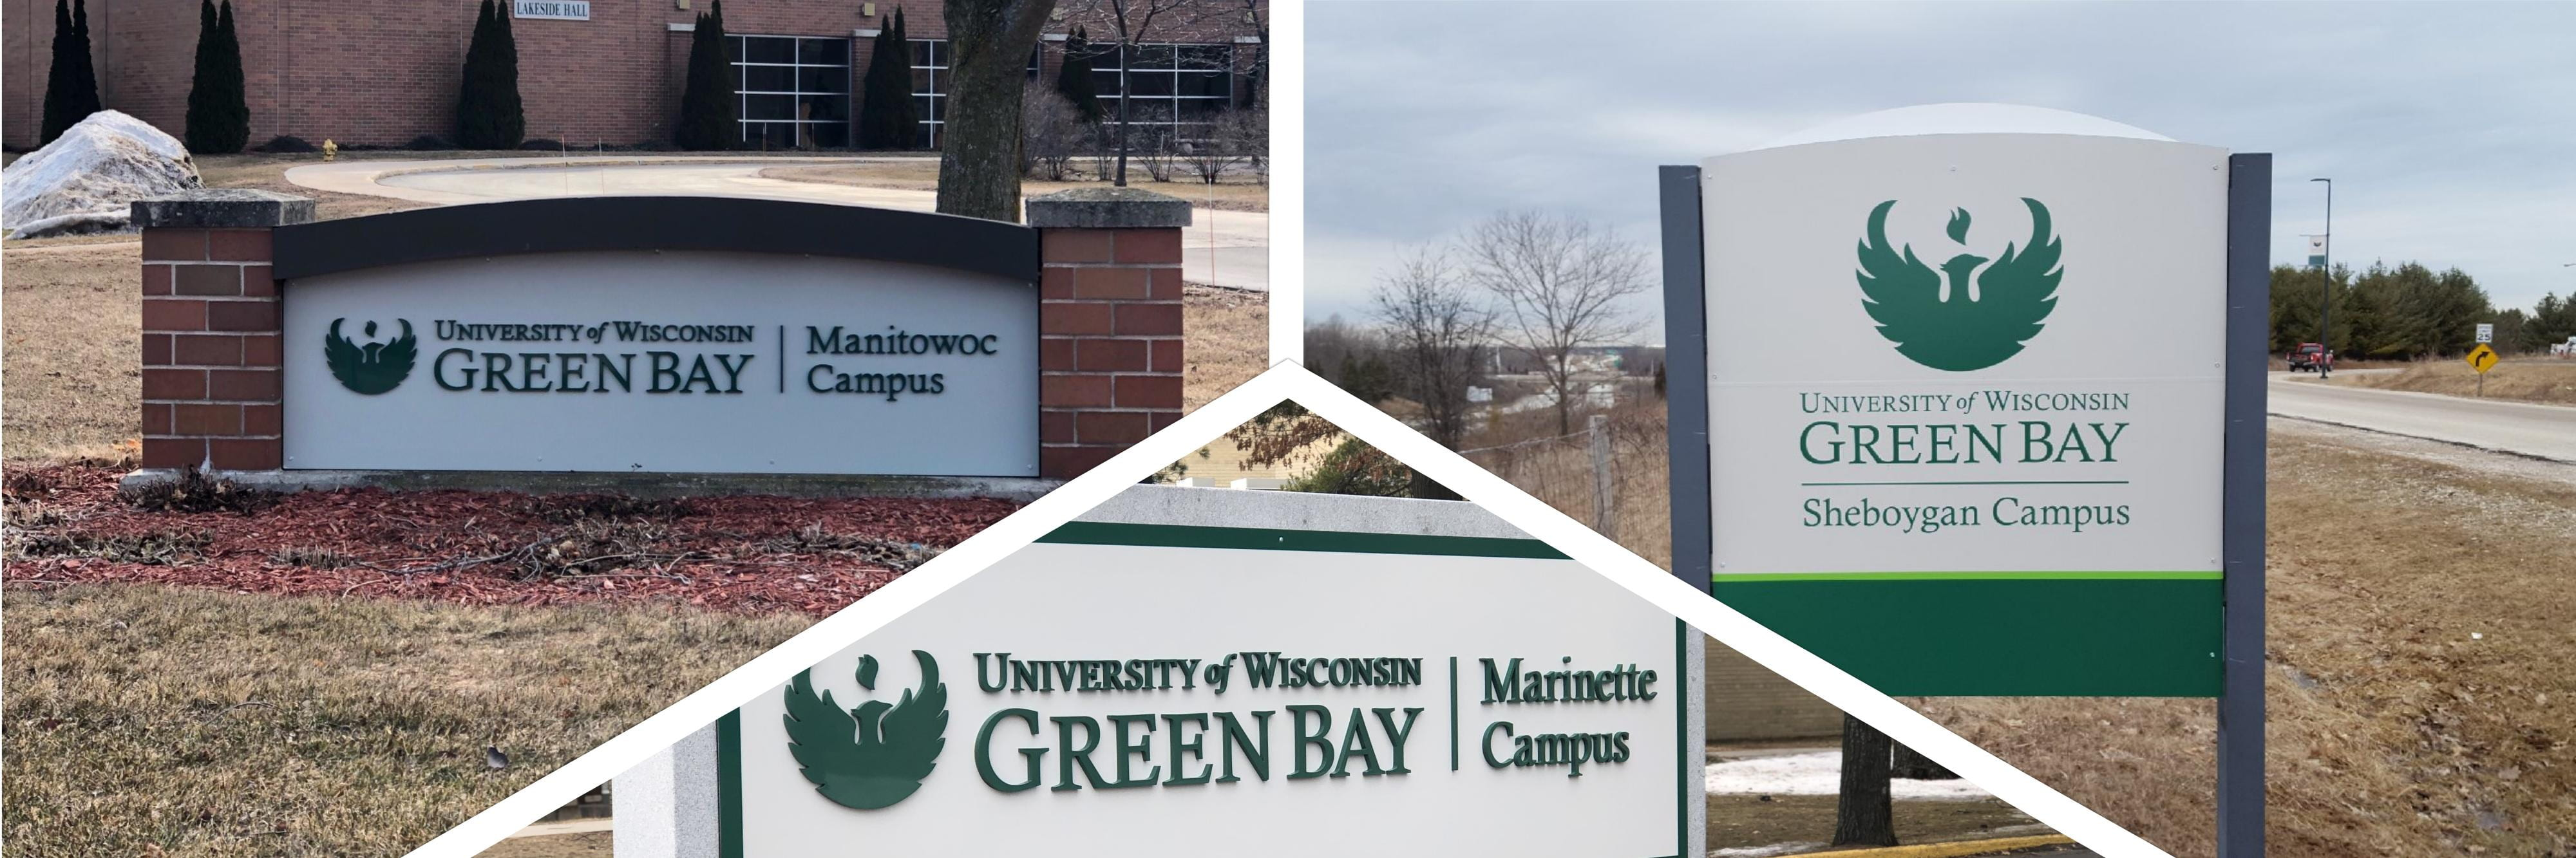 Branch campus signage collage